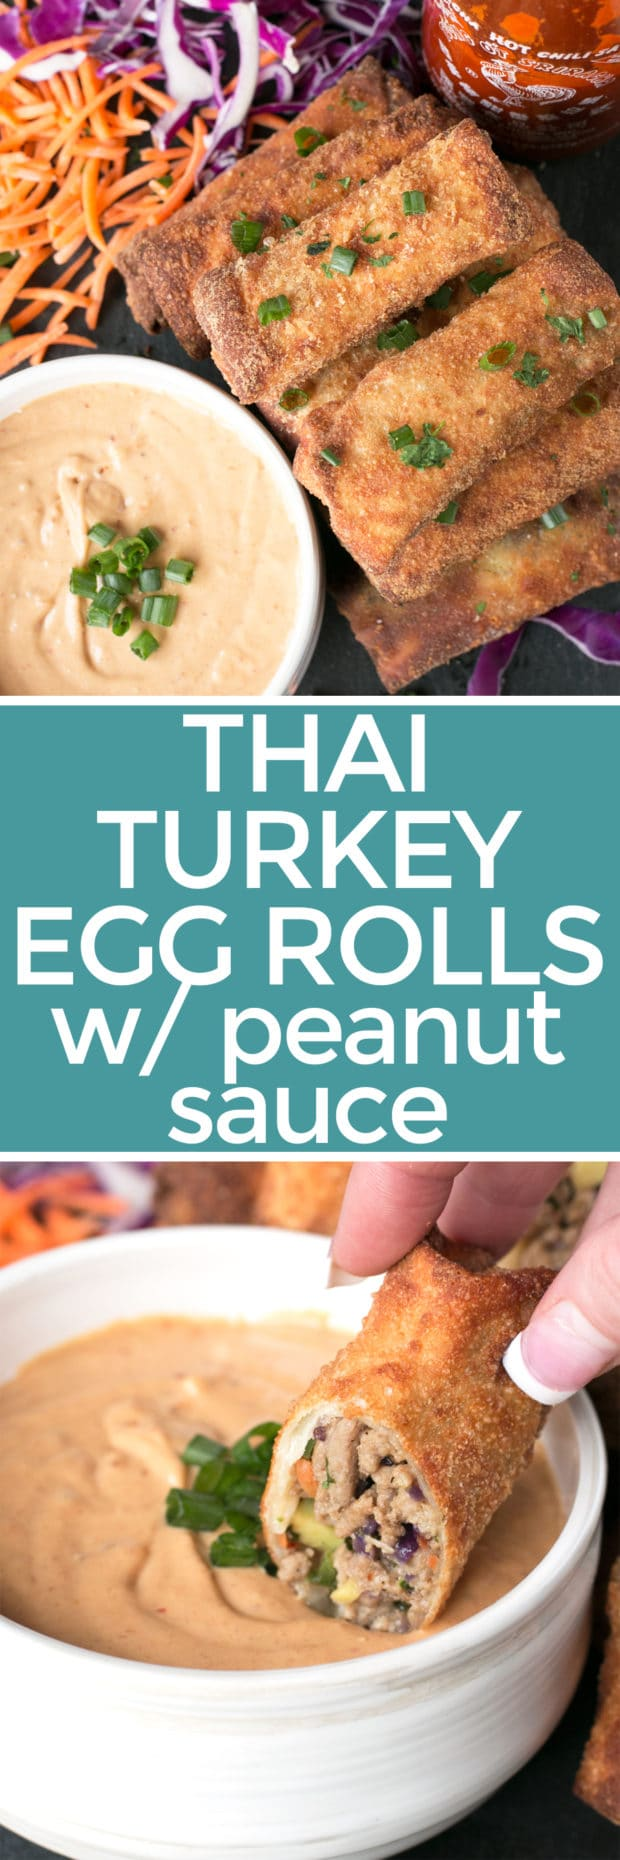 Thai Turkey Avocado Egg Rolls | cakenknife.com #appetizer